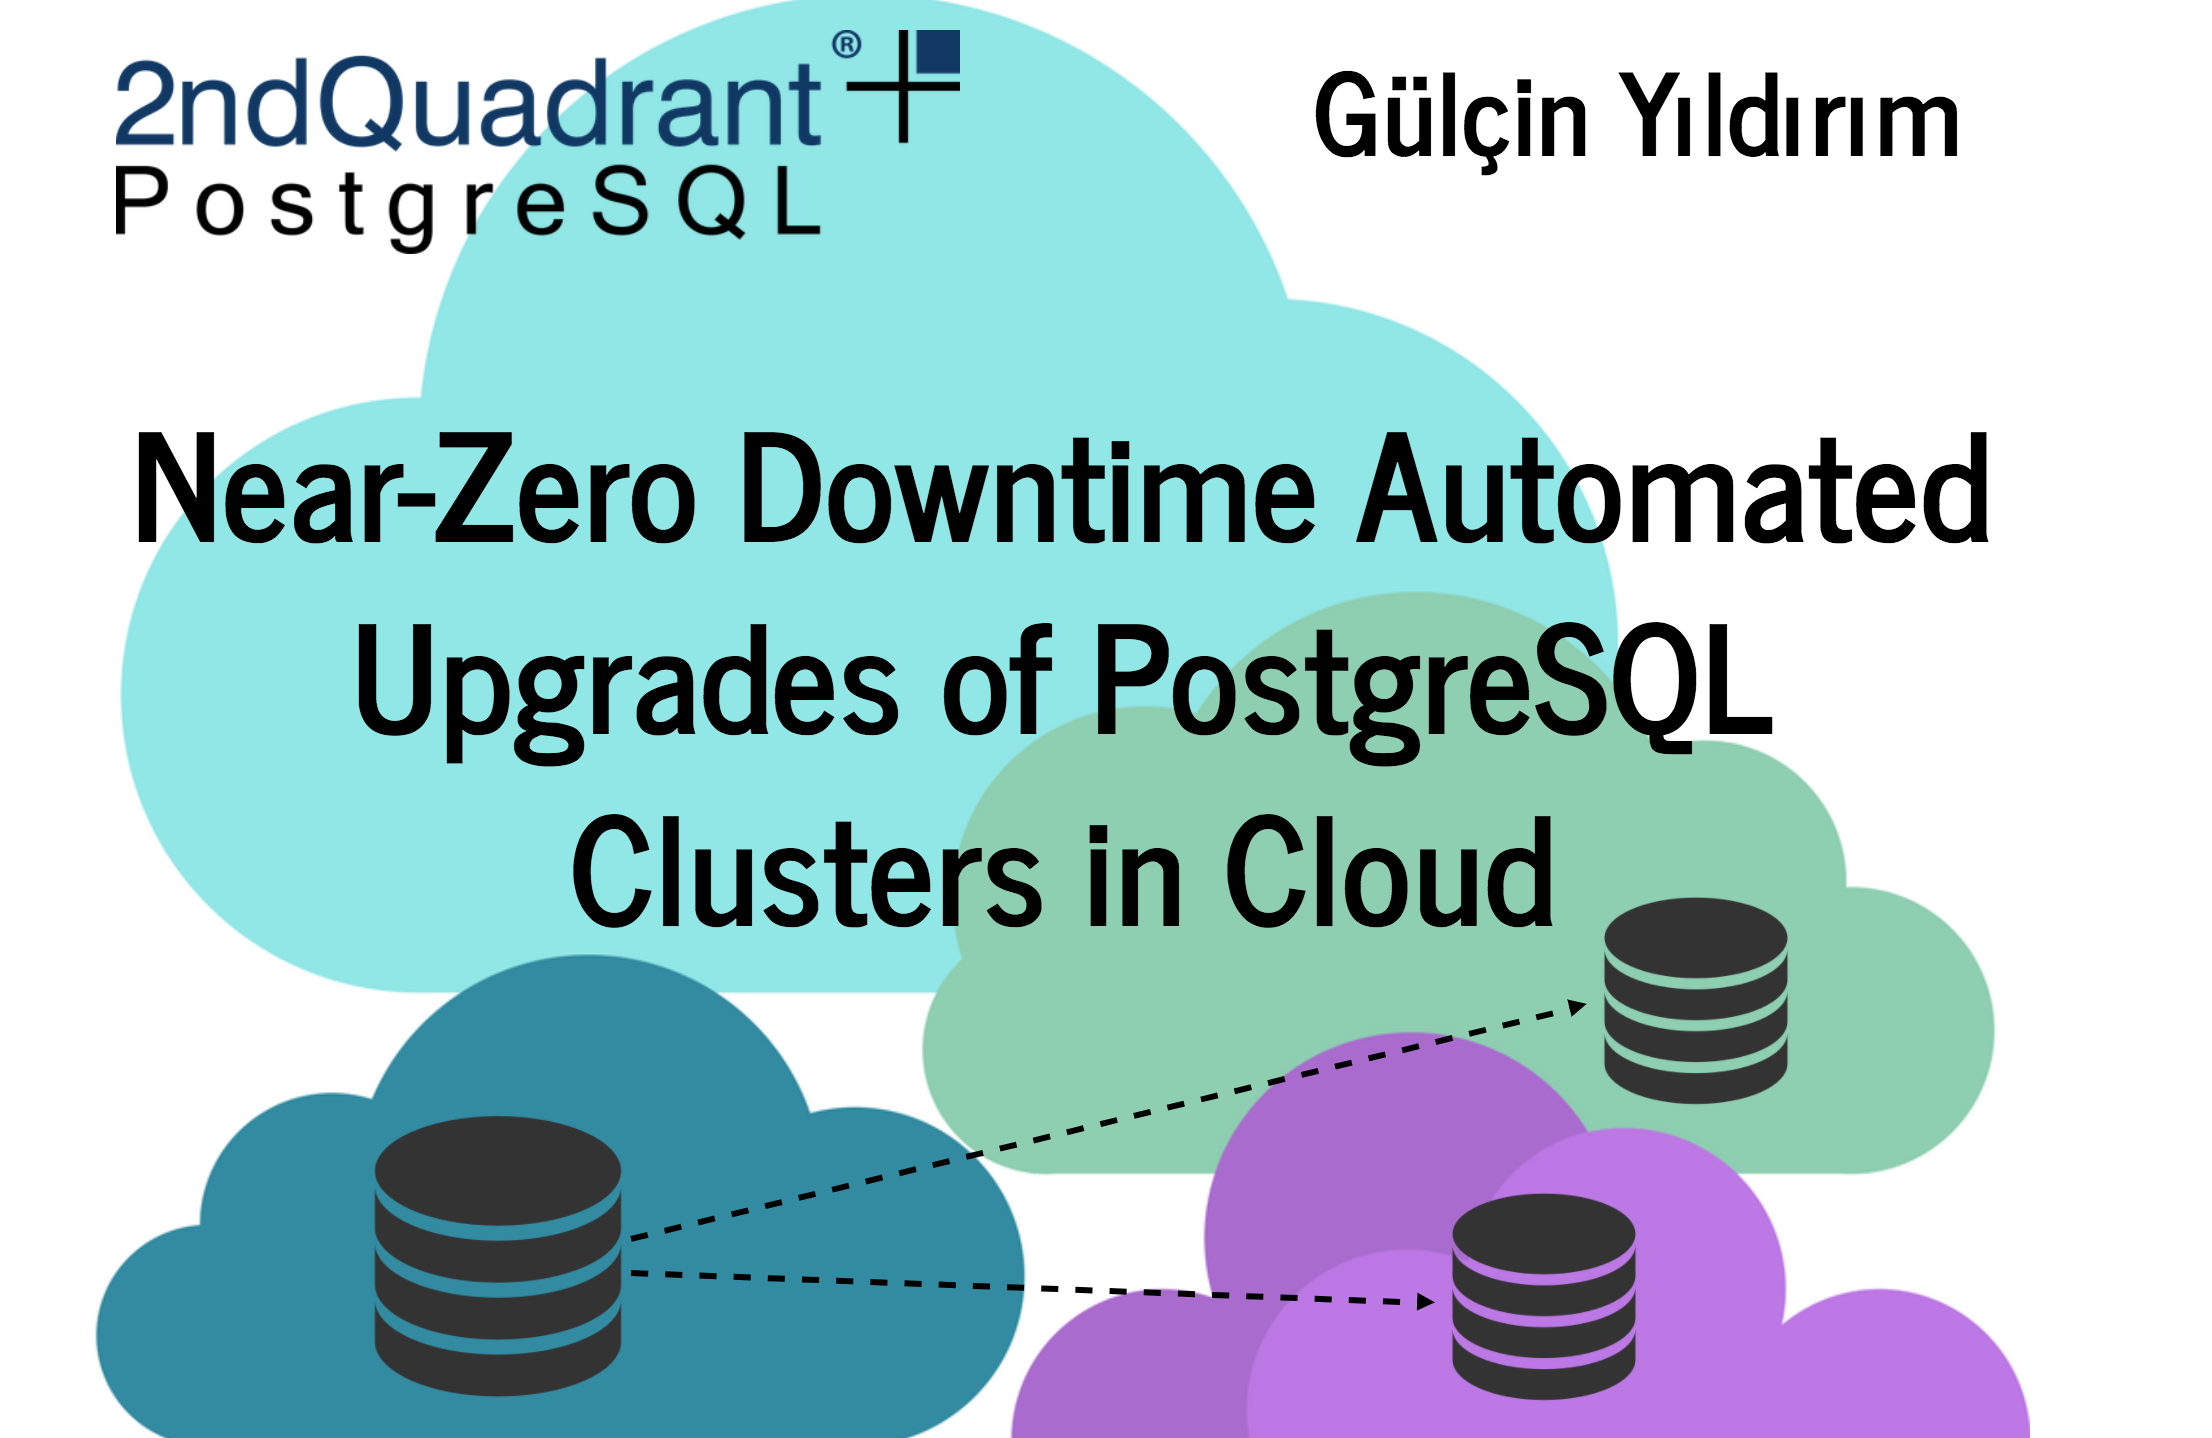 Near-Zero Downtime Automated Upgrades of PostgreSQL Clusters in Cloud